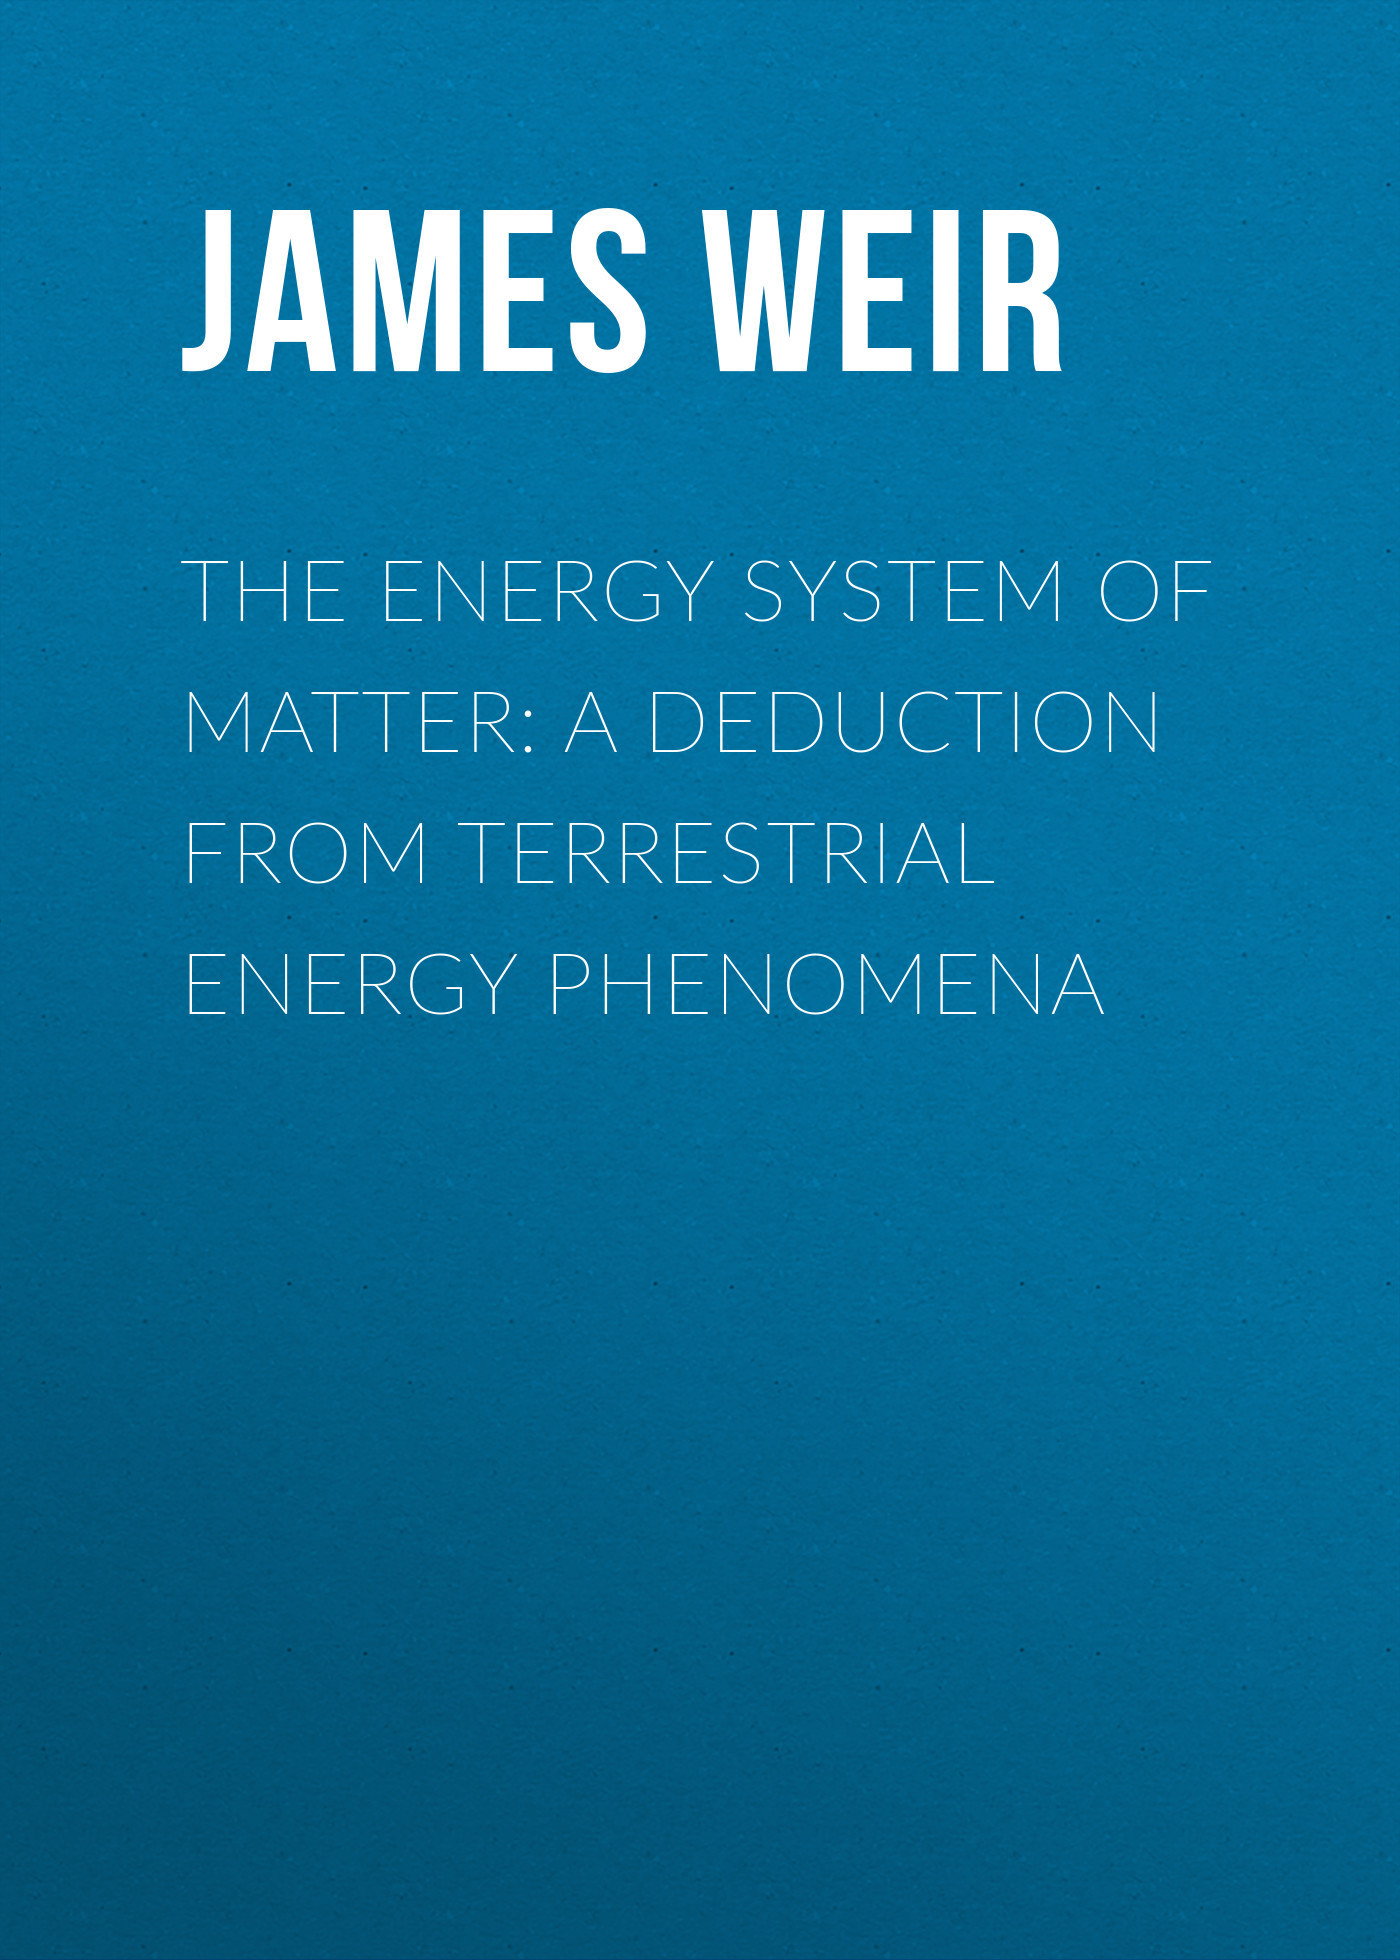 James Weir The Energy System of Matter: A Deduction from Terrestrial Energy Phenomena tpms car tire pressure monitoring system careud lcd display 4 external sensors auto alarm system solar energy diagnostic tool